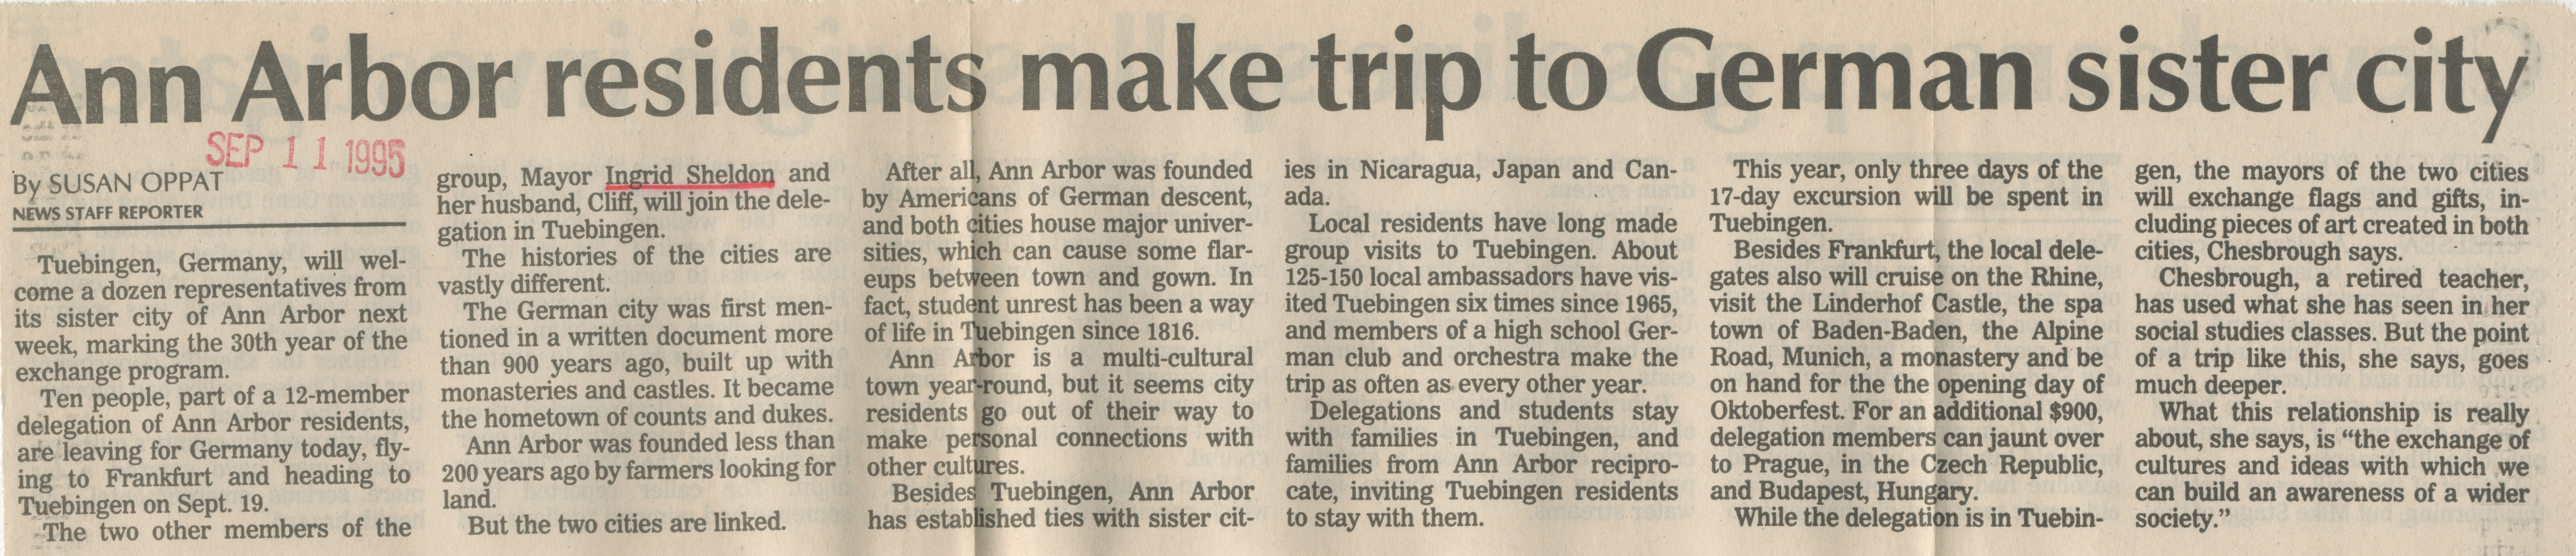 Ann Arbor residents make trip to German sister city image